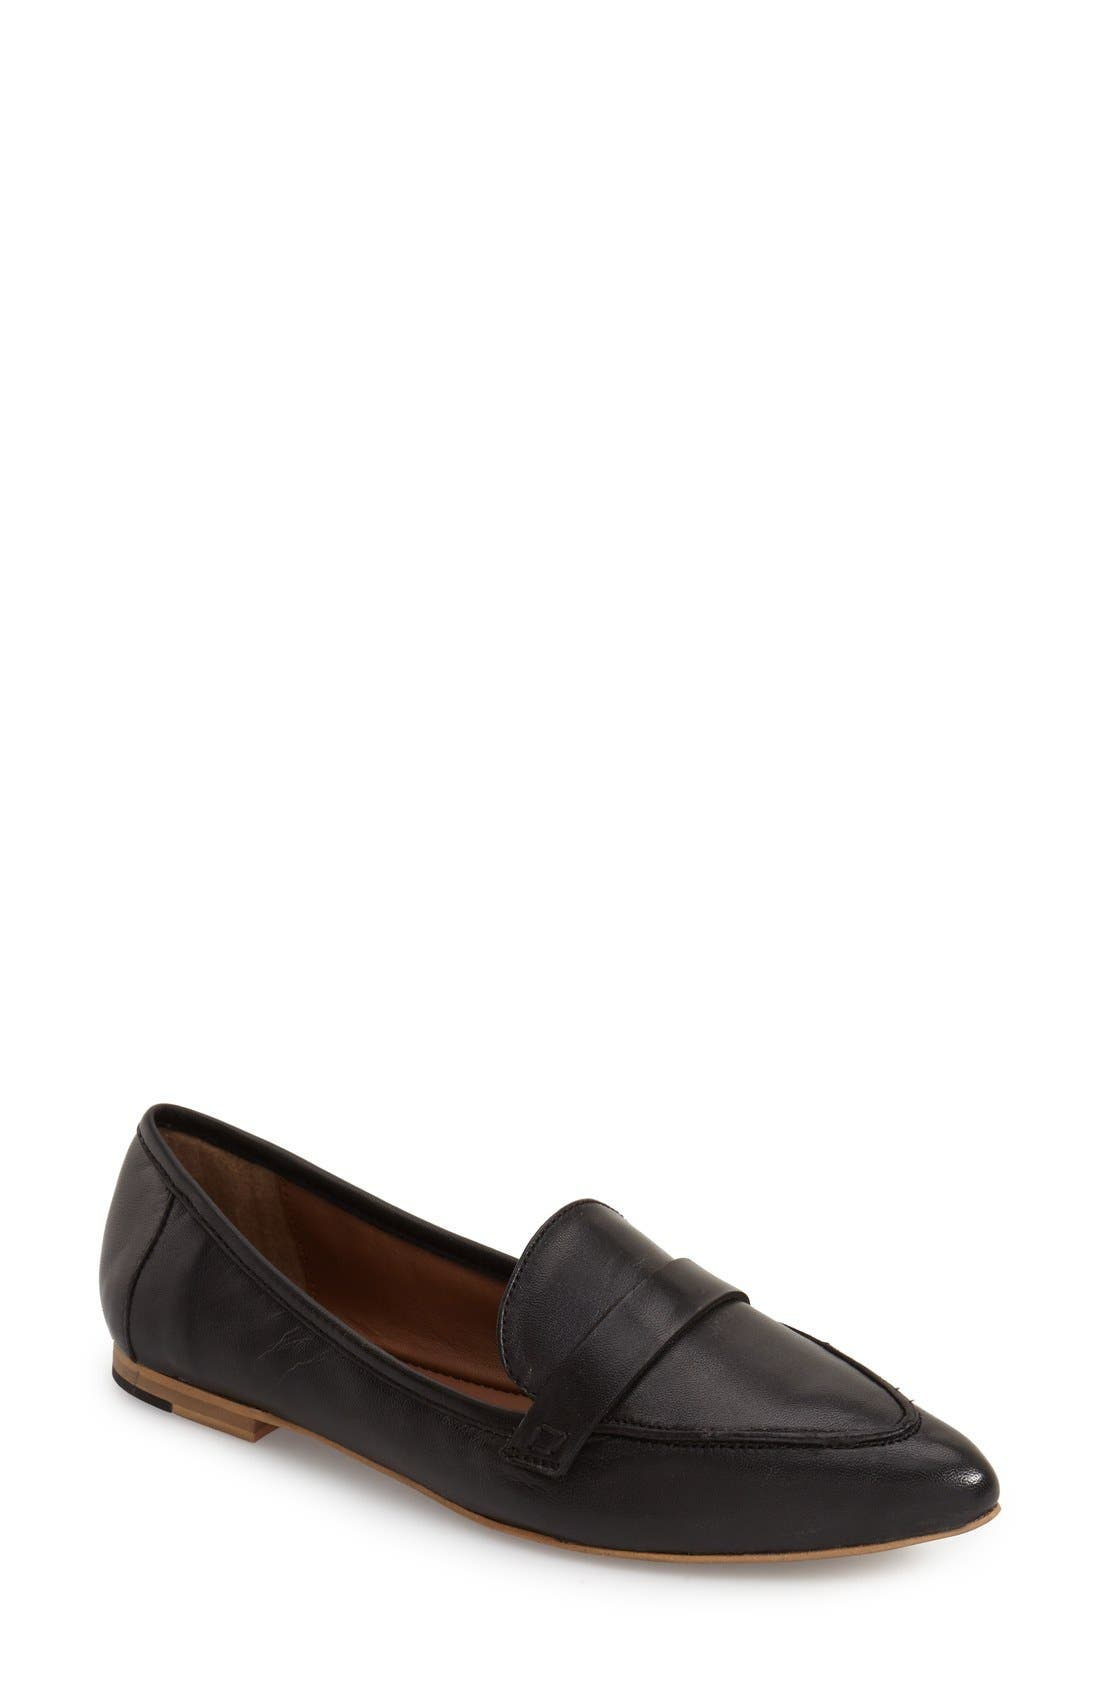 Kimi Loafer,                             Main thumbnail 1, color,